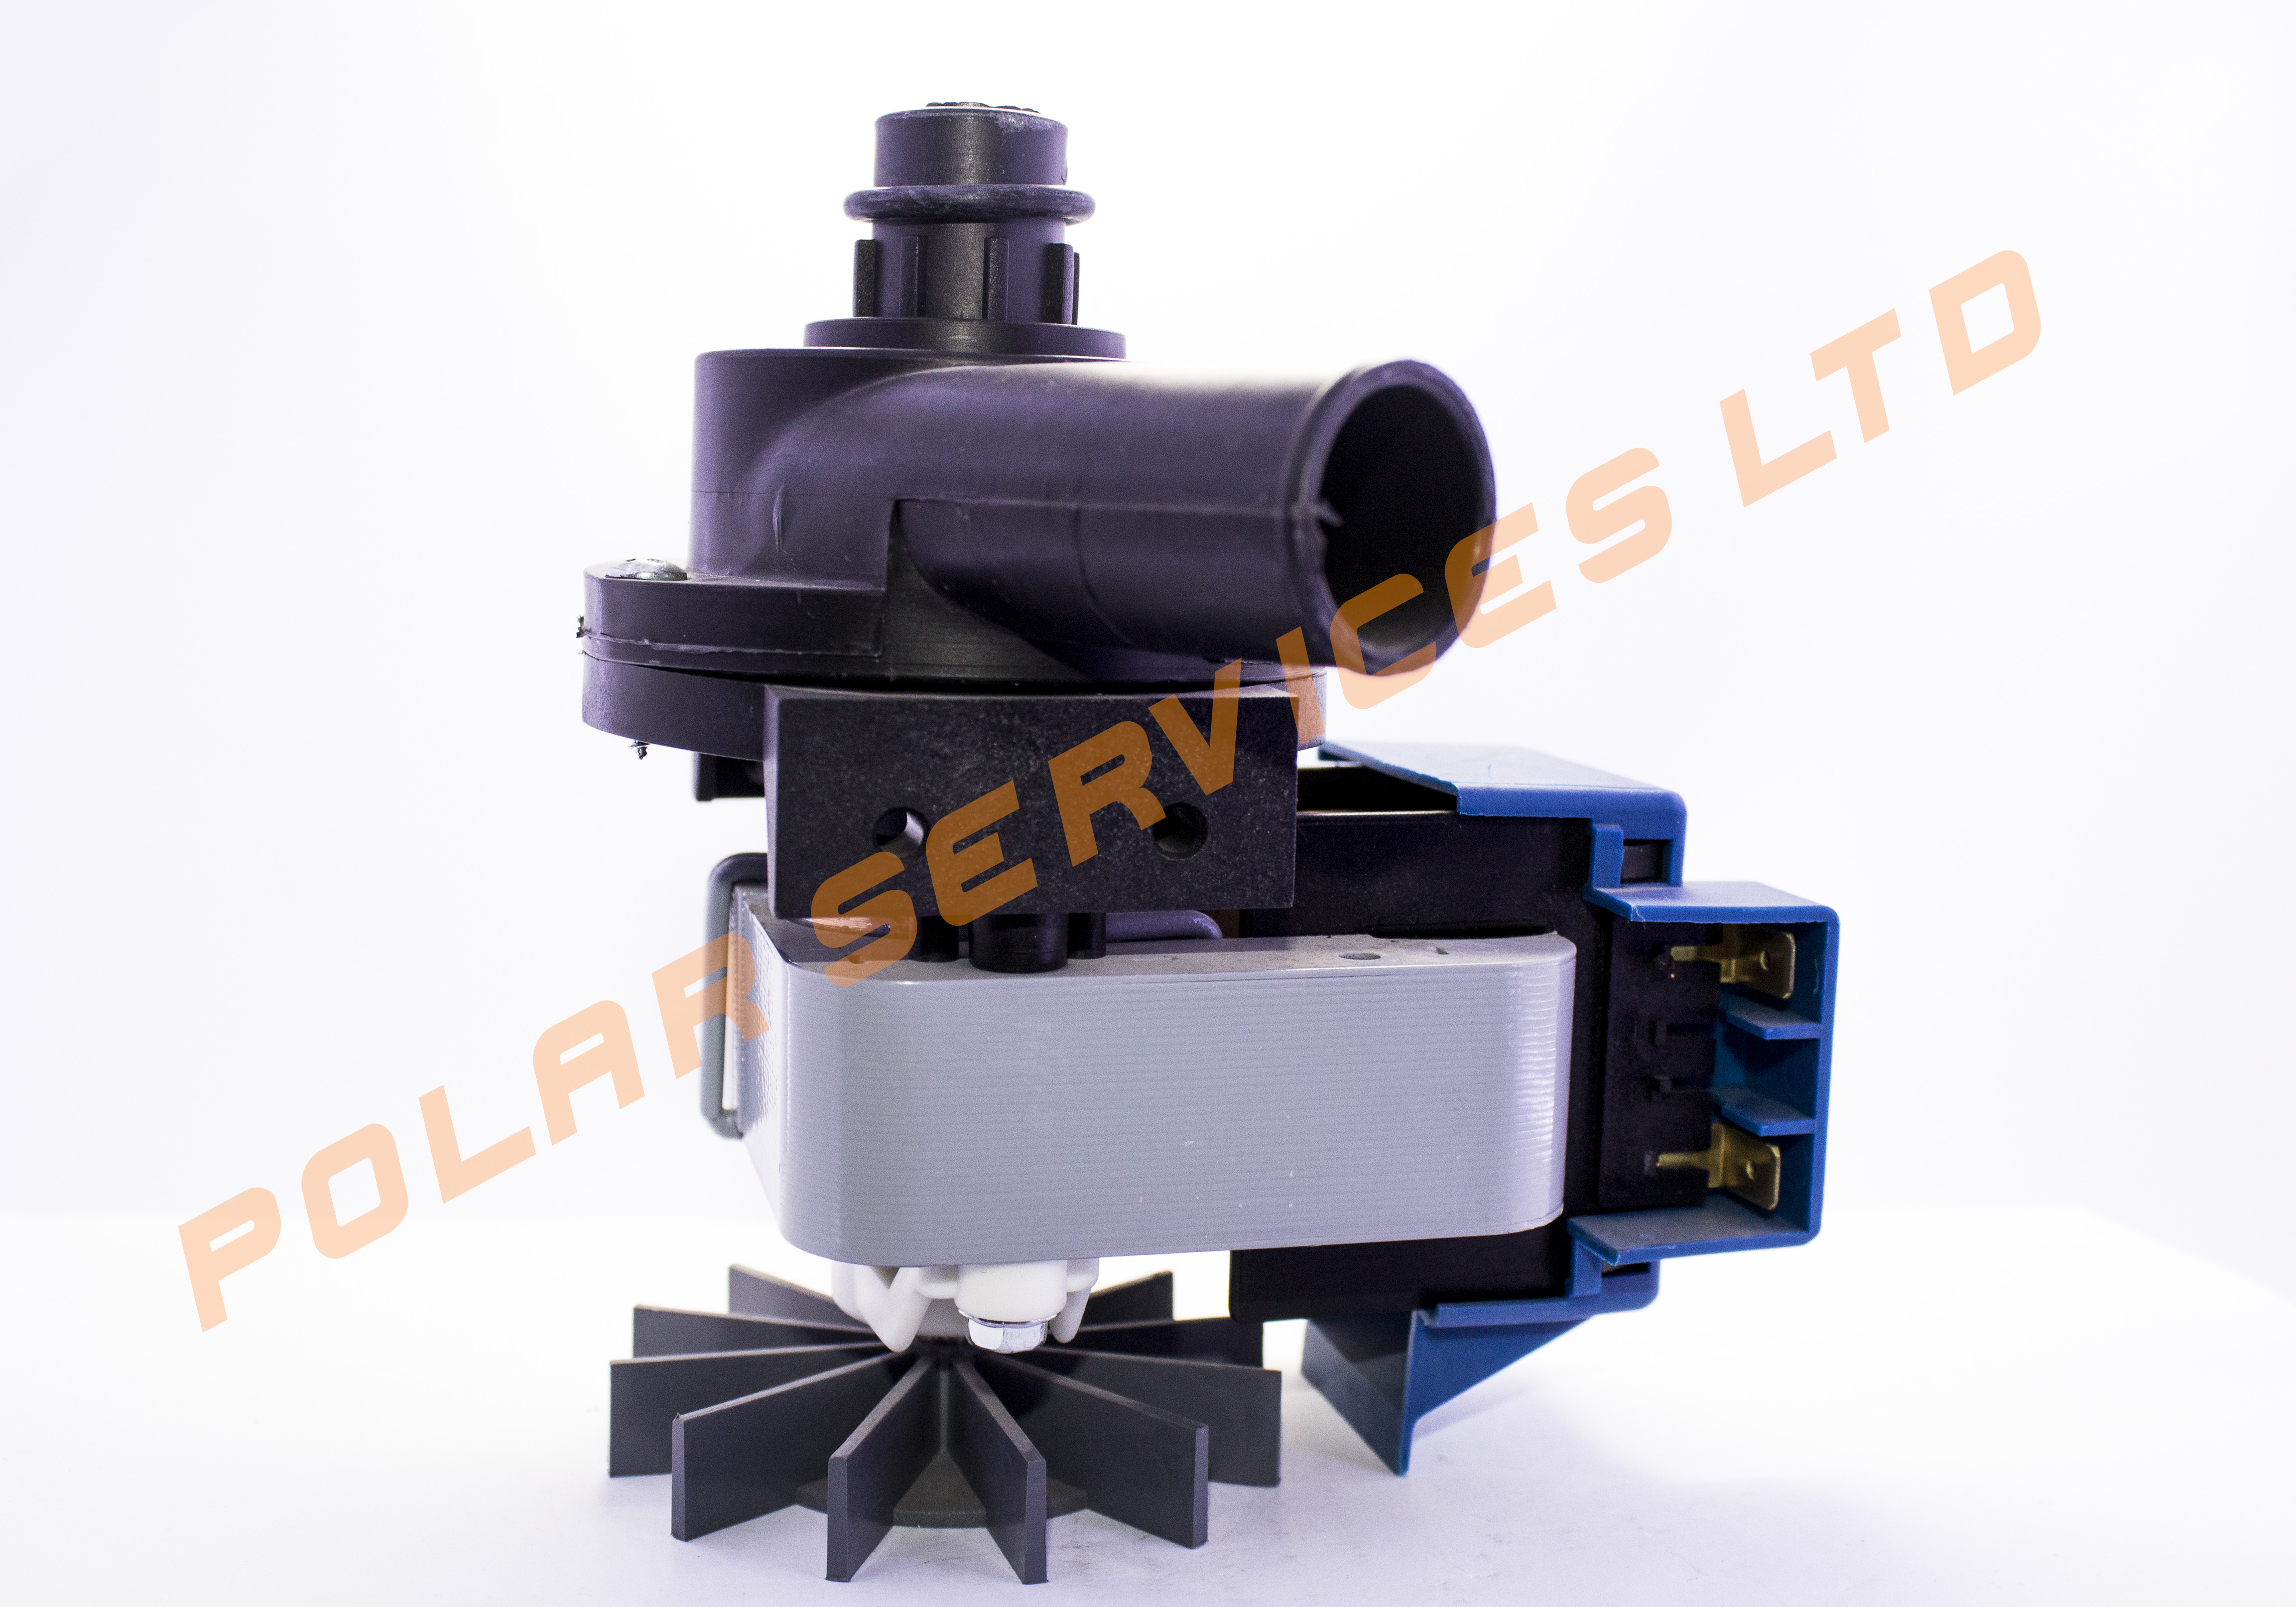 DISHWASHER DRAIN PUMP, GRE 508, PLASET 44907,  AEG 8996464032474 Malta, 								Dishwasher Malta, Polar Services LTD Malta Malta